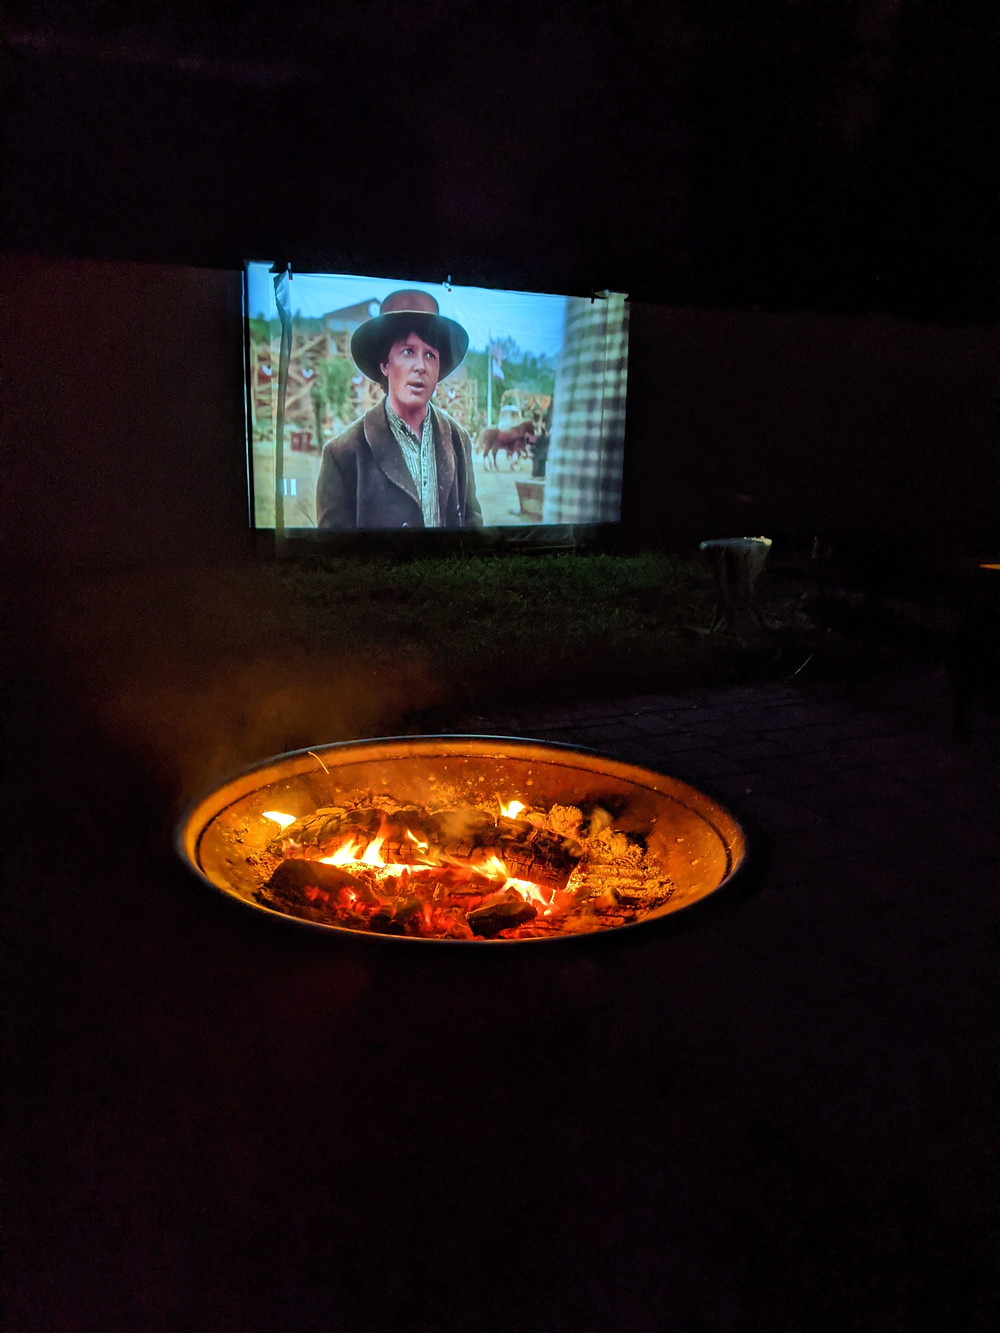 Outdoor Movie - Our At-Home Date Night Game - Amanda MacGregor - joseph Centineo